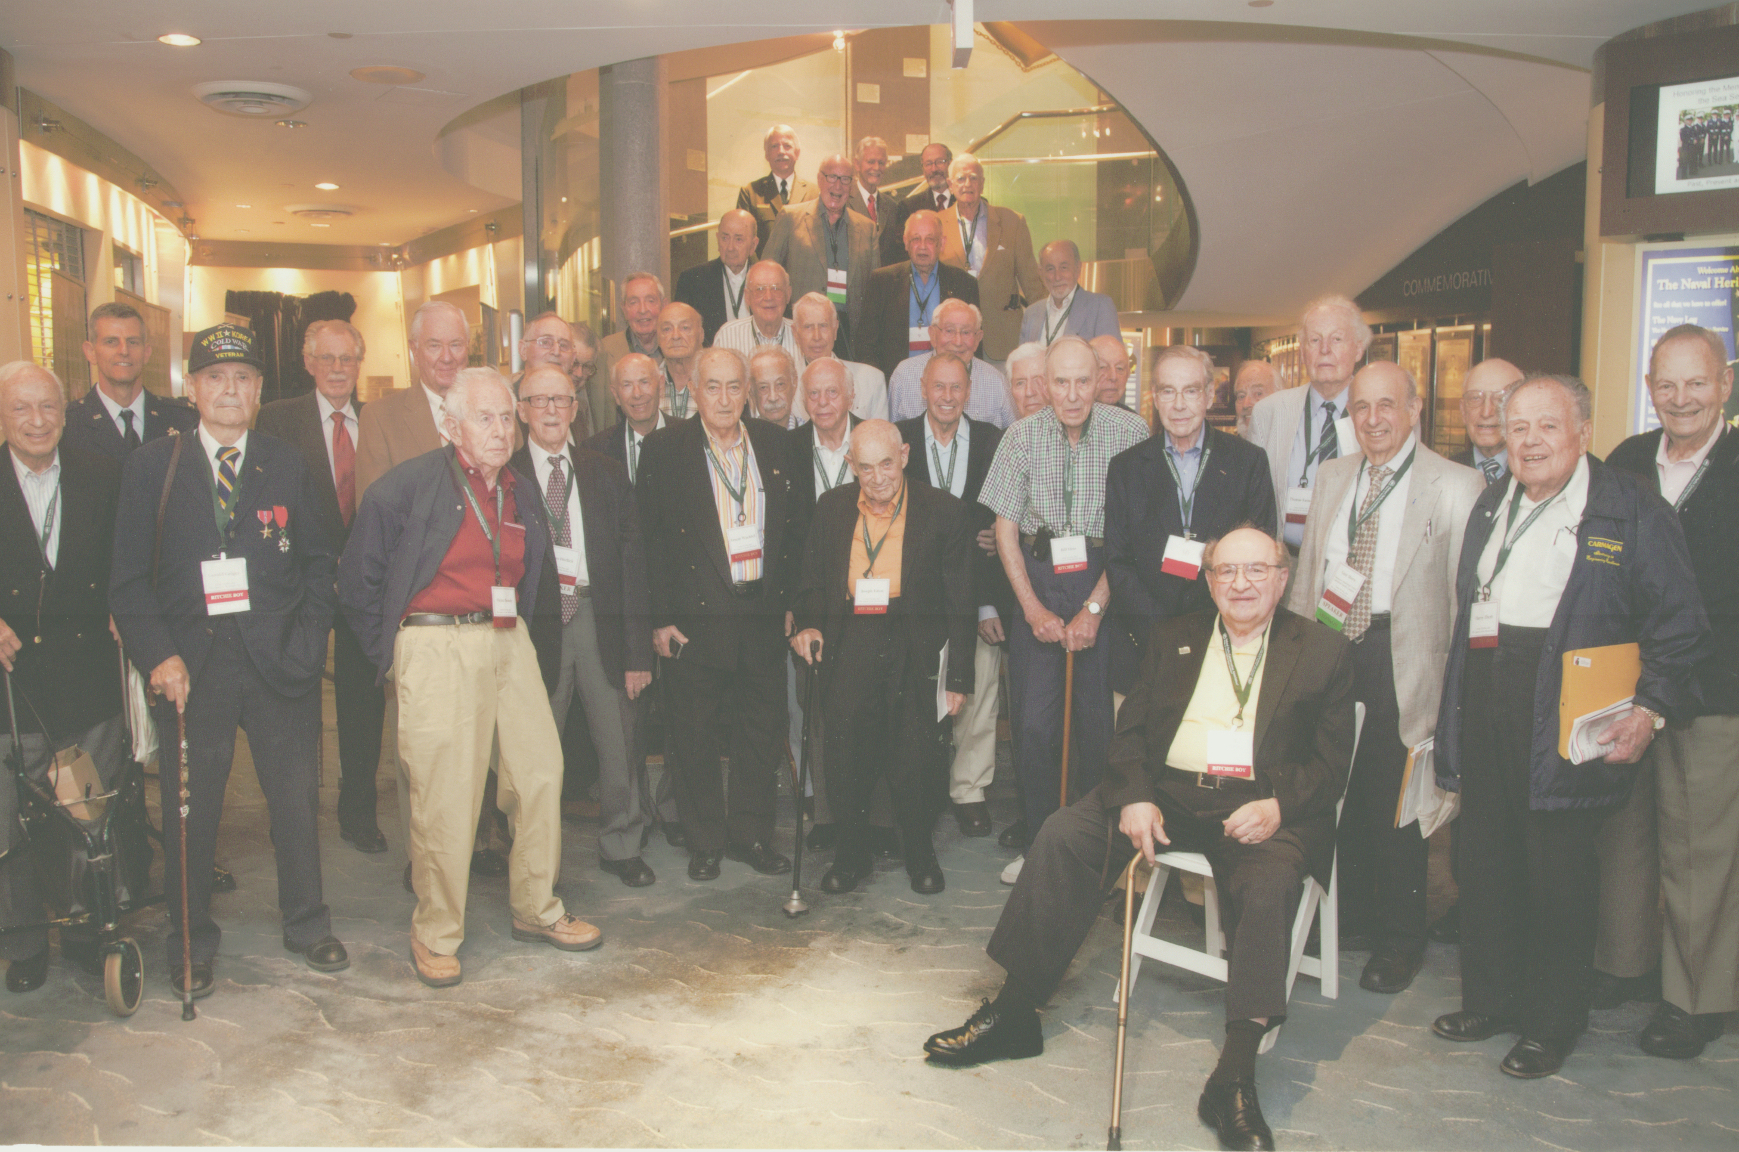 A Photo from a ritchie boy reunion held in washington d.c.   - Wannabe Ritchie Boy Daniel Gross joined the Ritchie Boys for the photo.